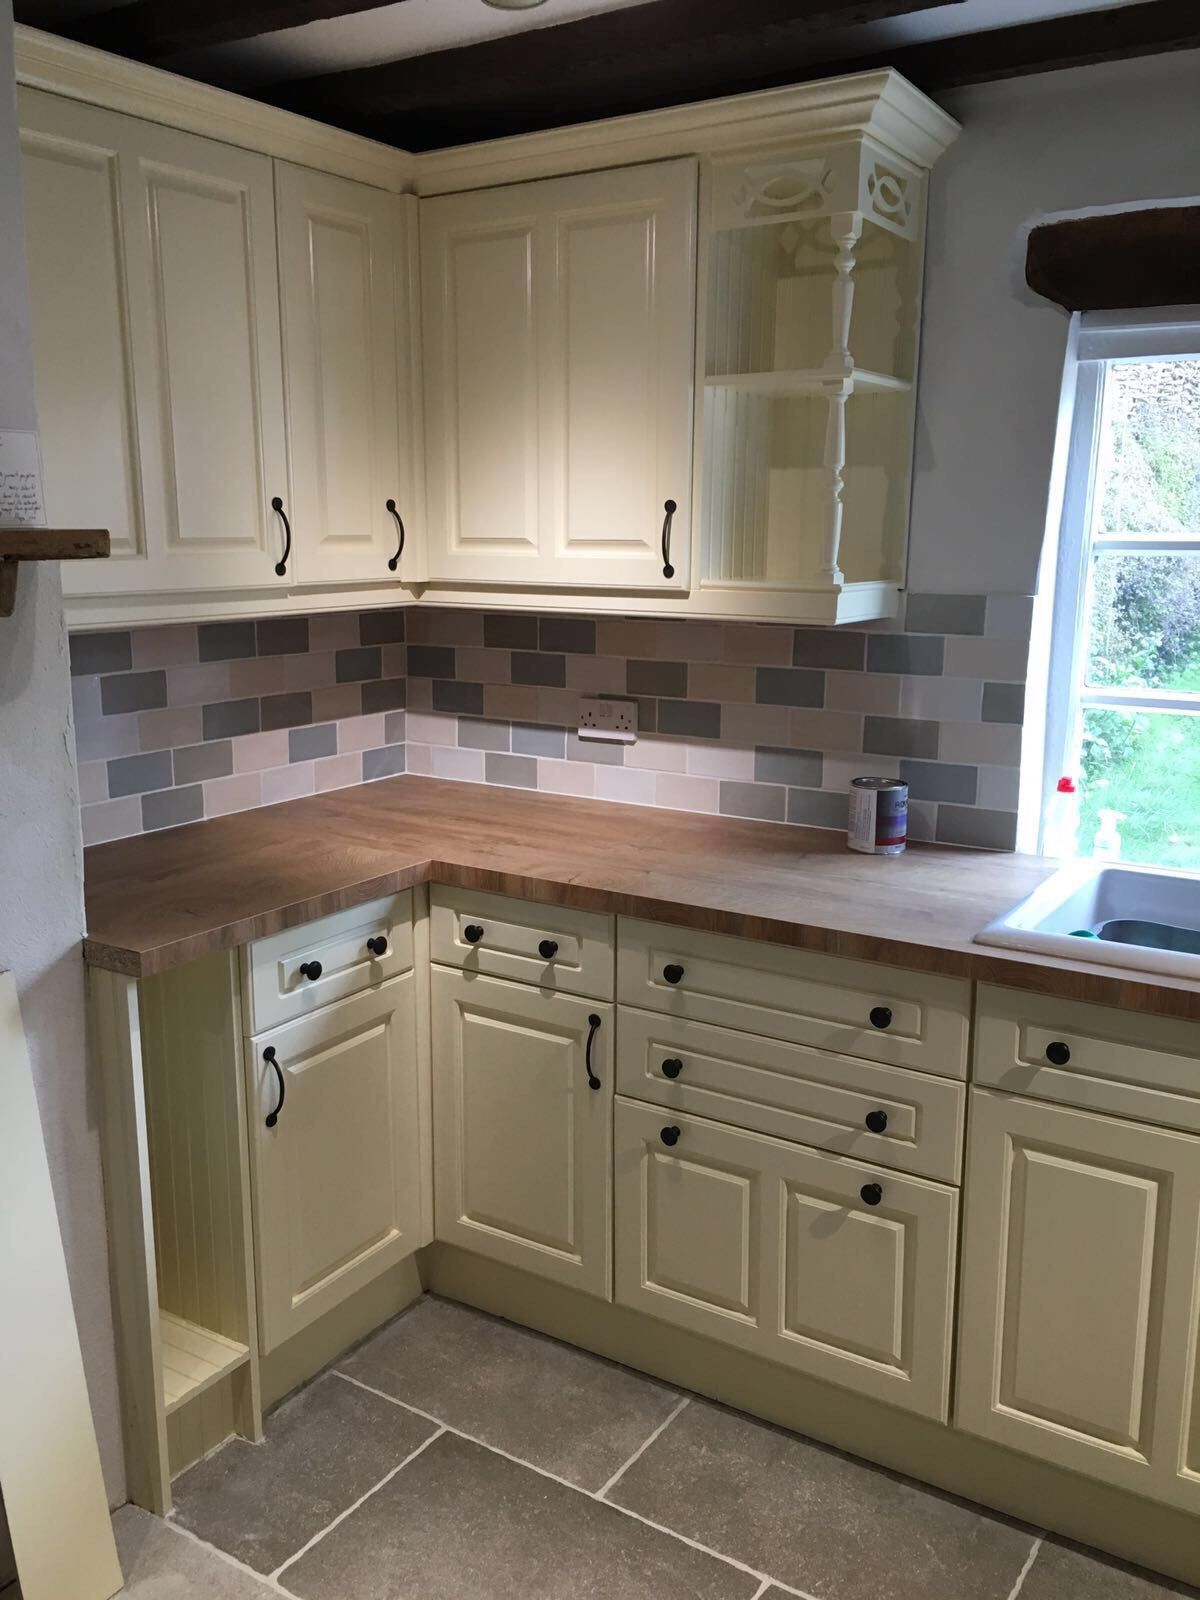 Country Cottage Kitchen Wickes Wall Tiles Country Cottage Kitchen Kitchen Wall Tiles Kitchen Wall Tiles Modern